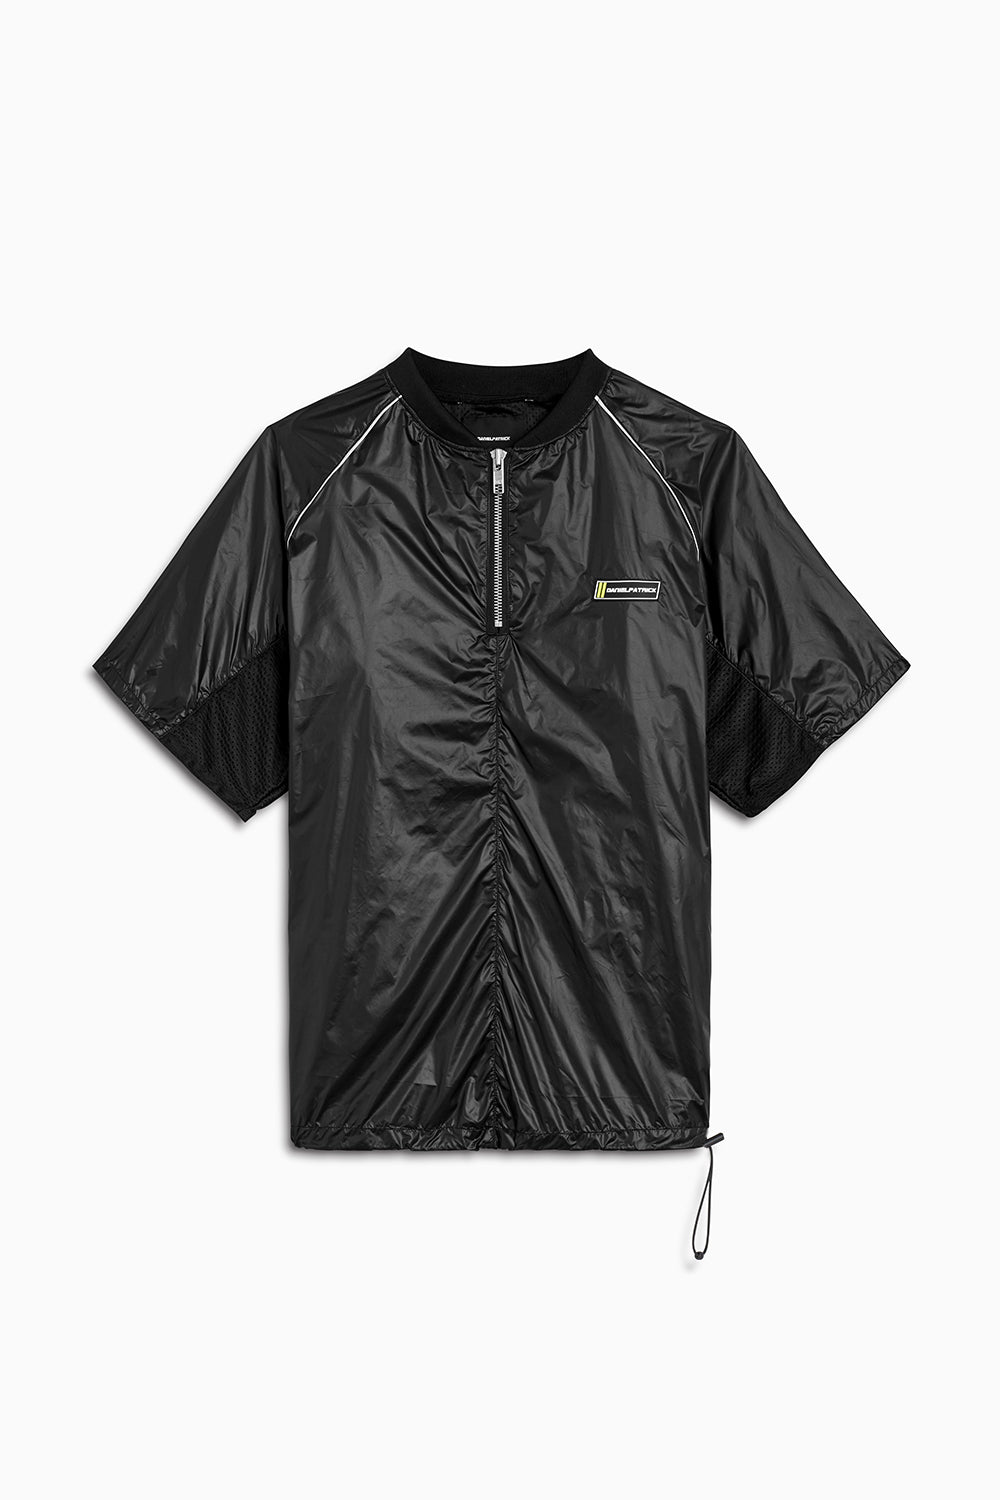 s/s batting jacket / shiny black